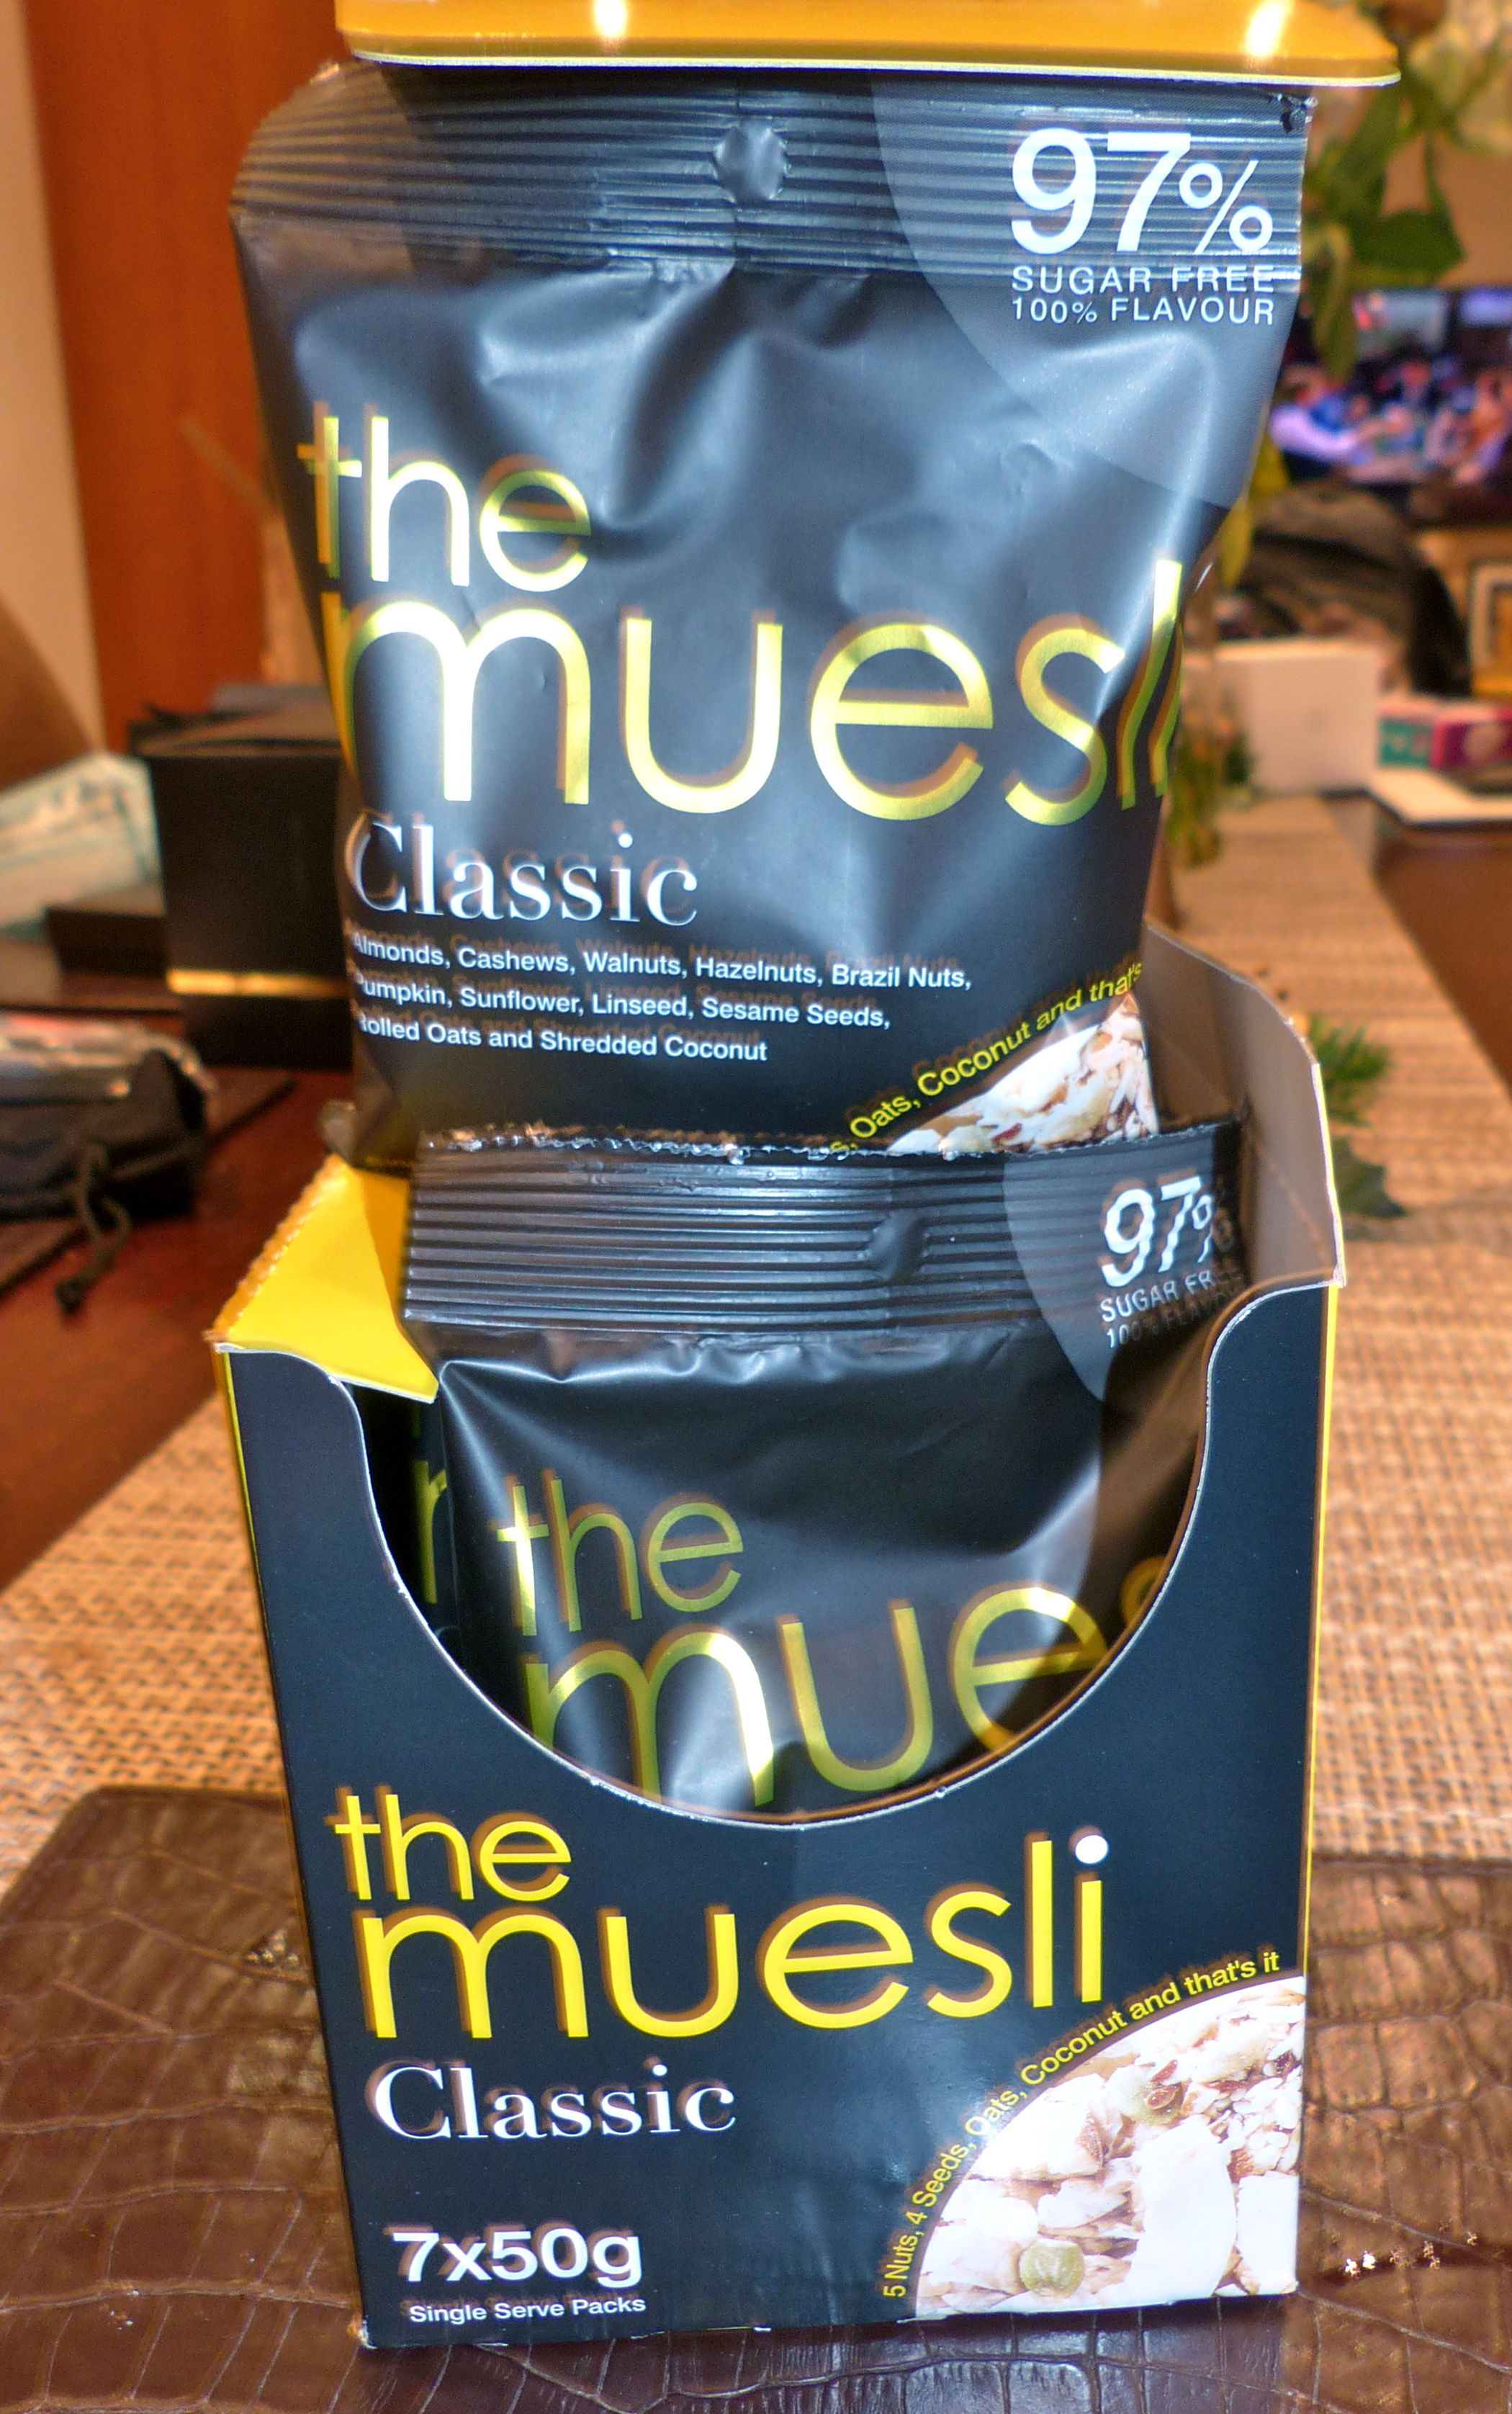 A box of The Muesli sachets